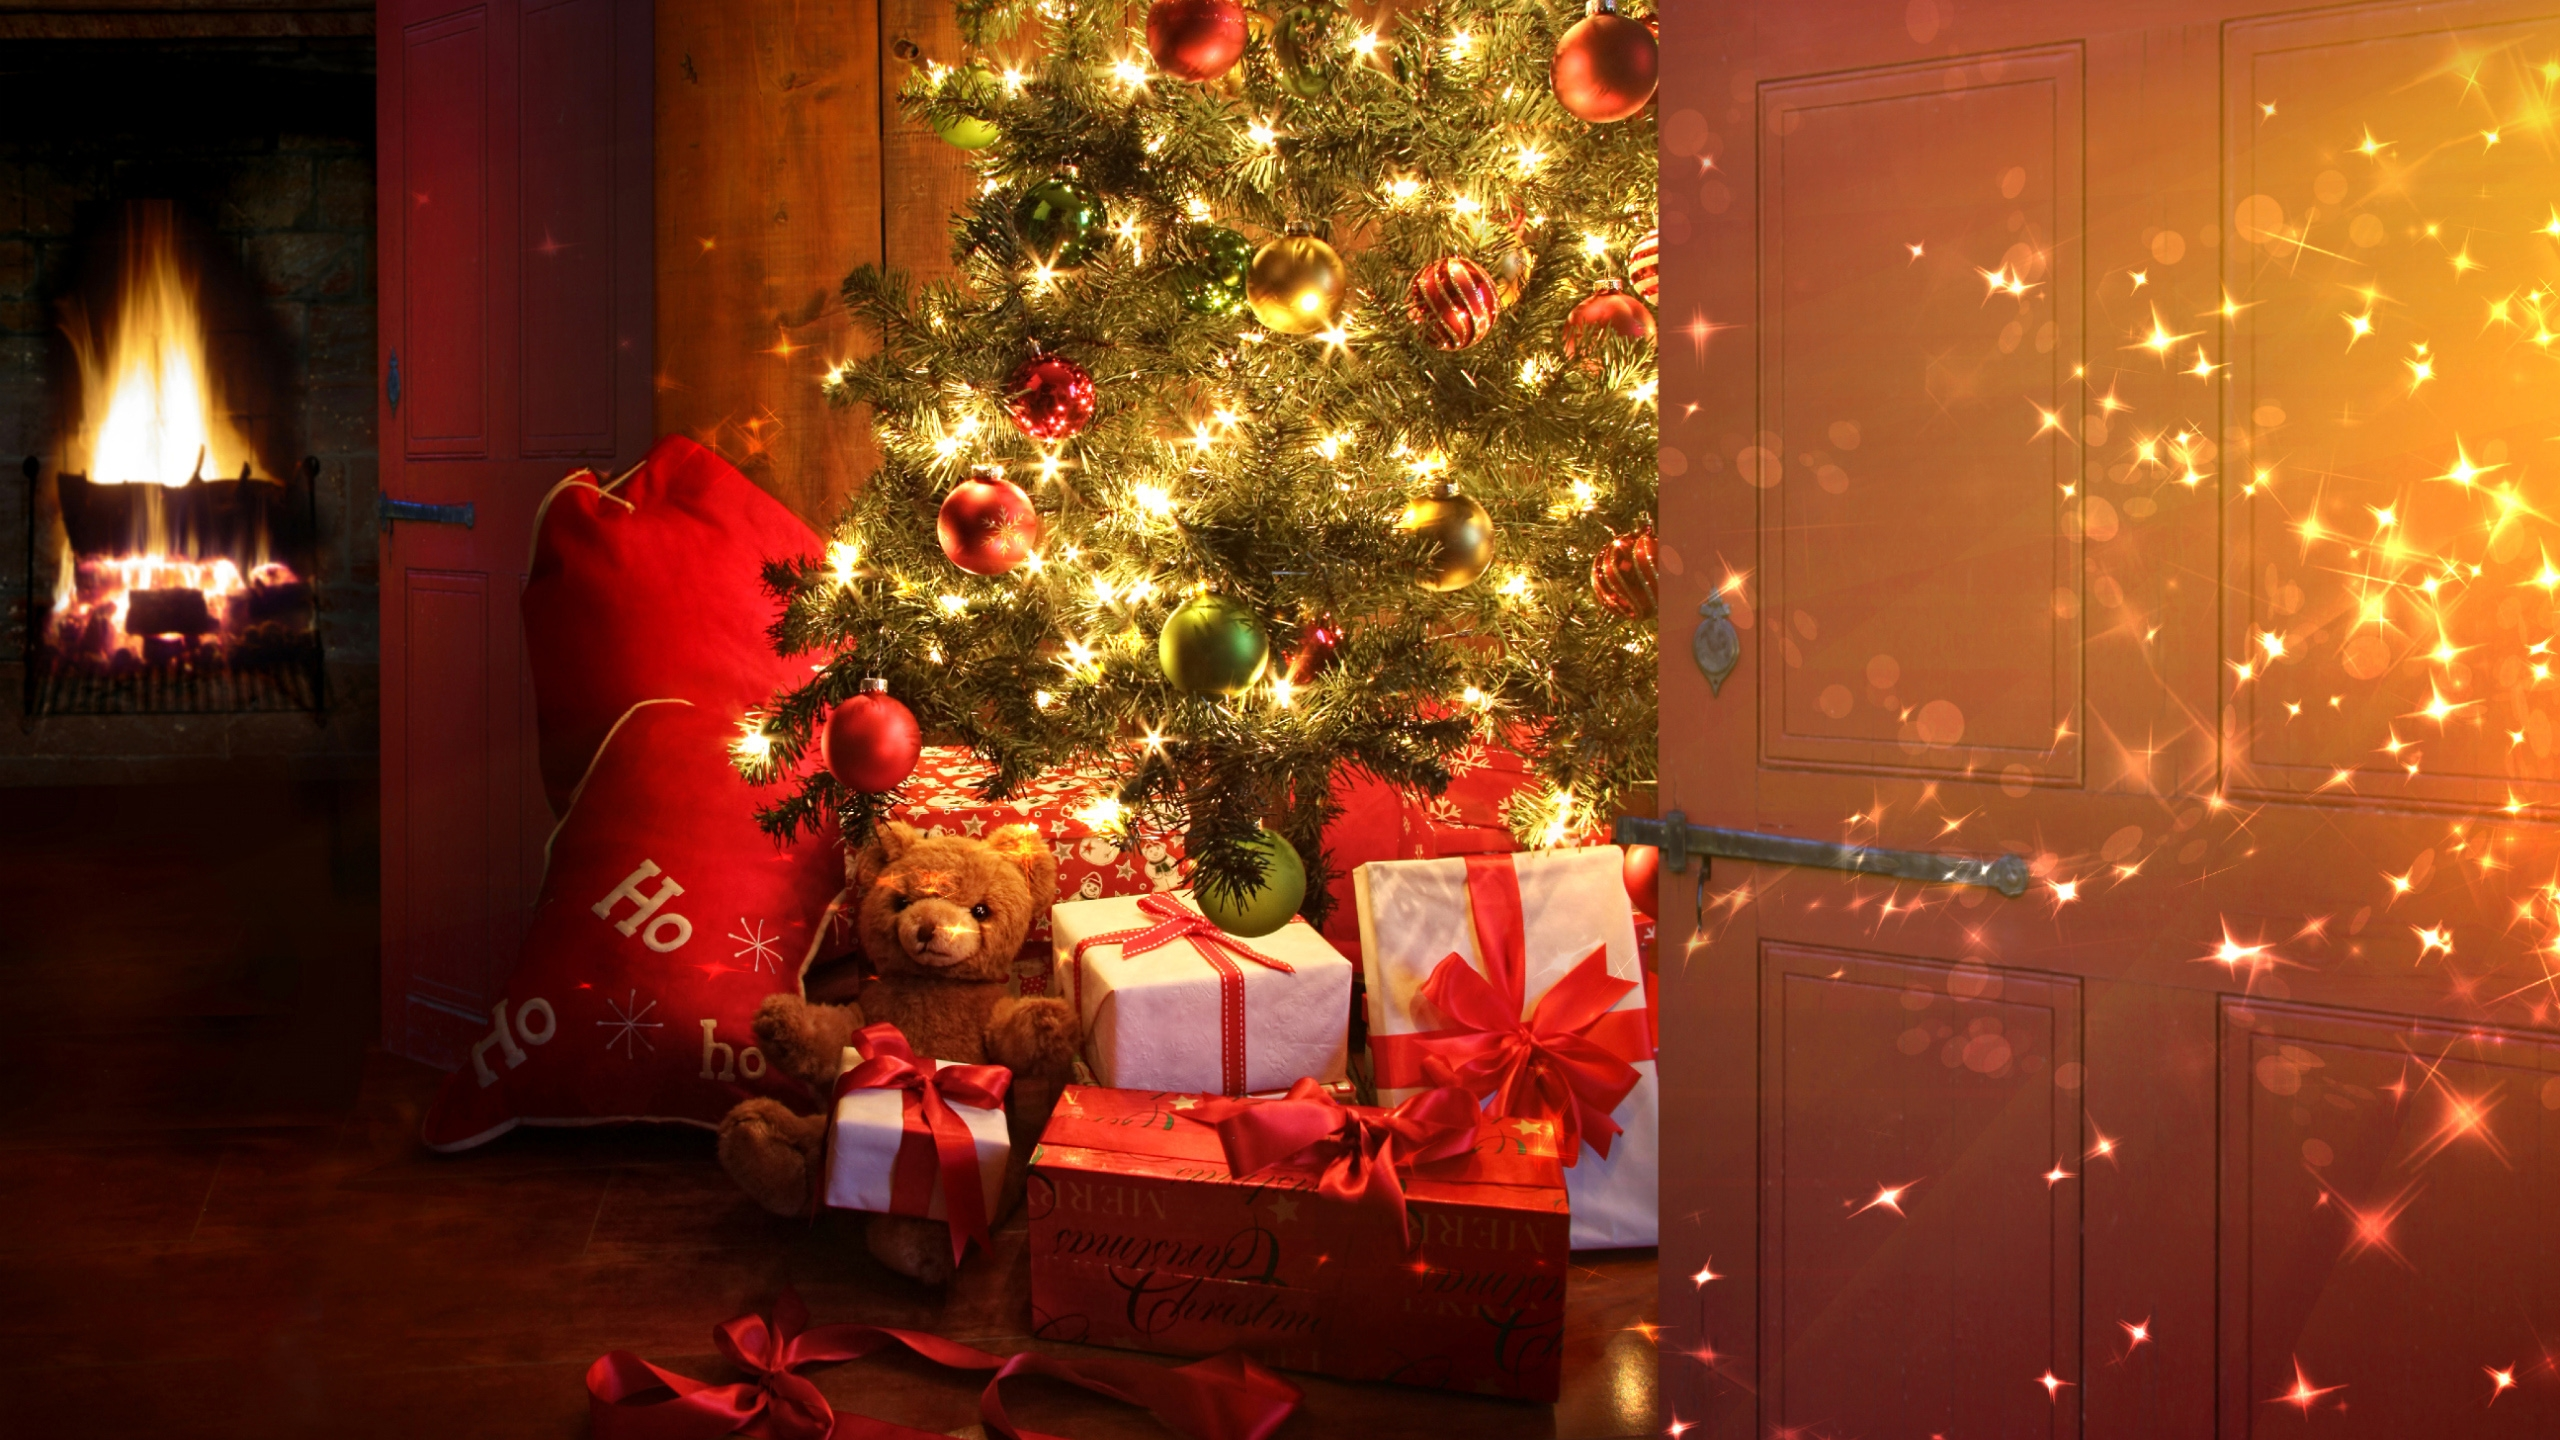 Christmas tree and presents wallpapers Christmas tree and presents 2560x1440